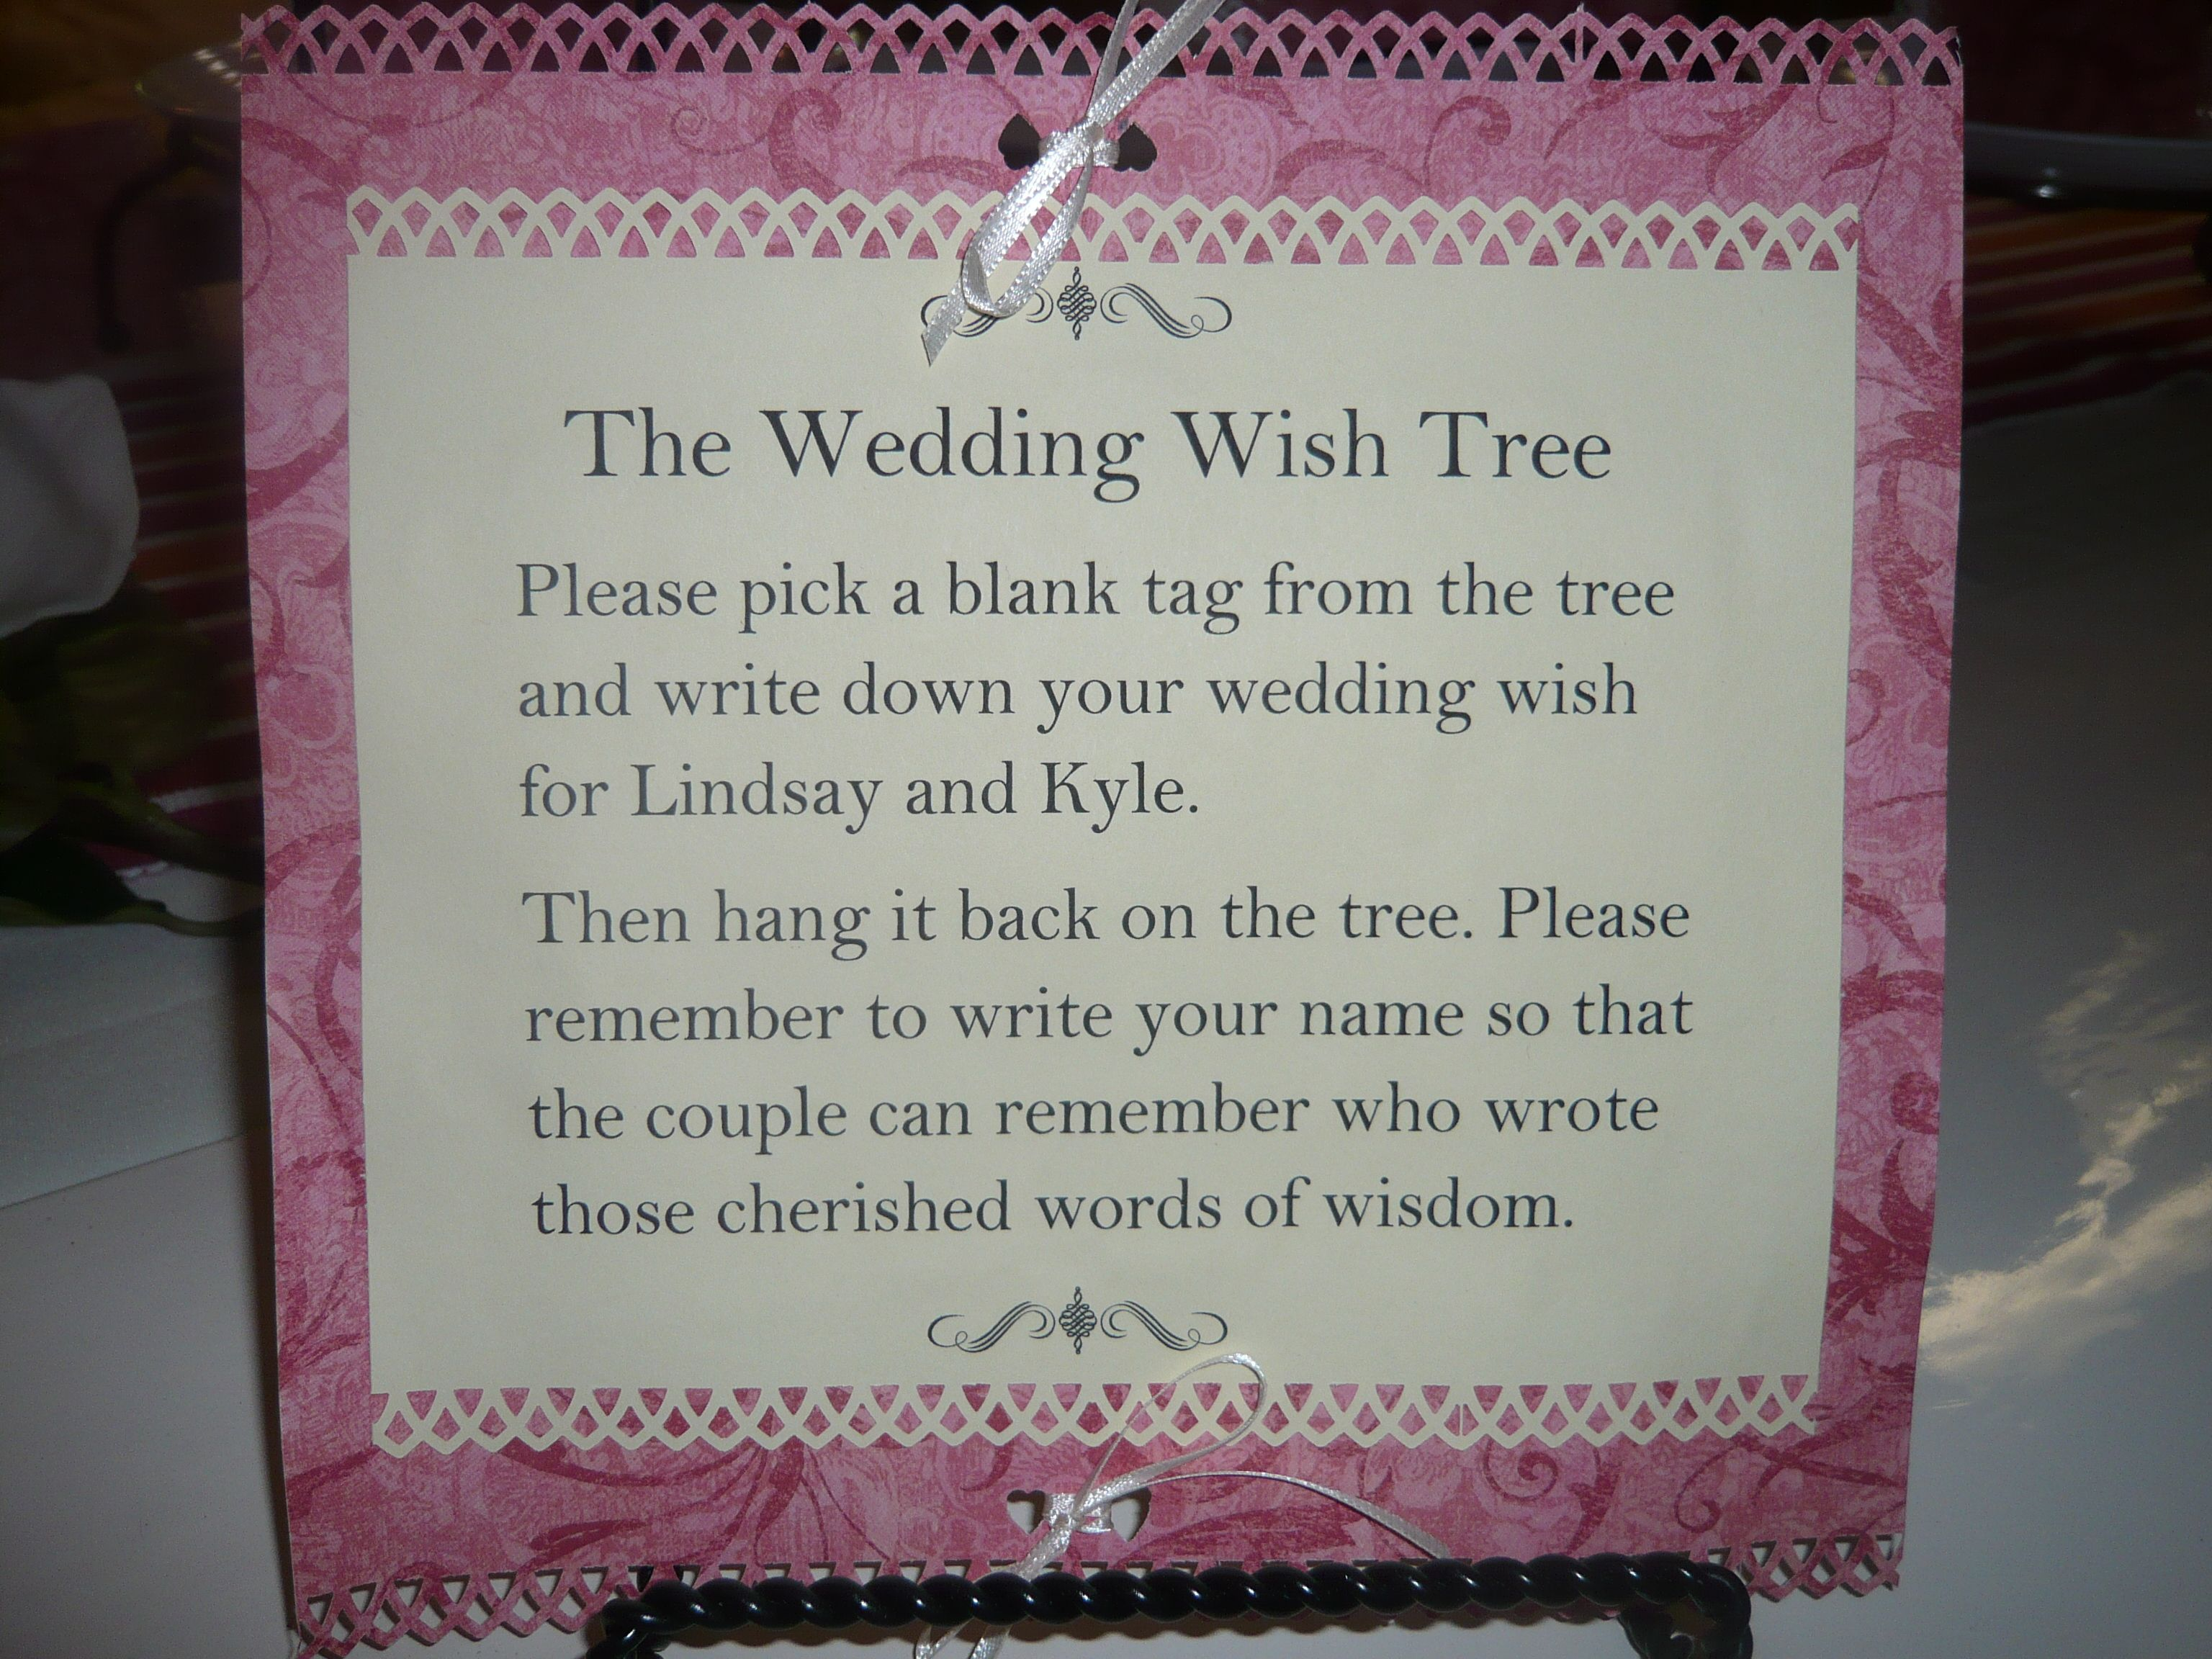 recipe themed bridal shower invitation wording%0A Wedding Money Tree Wording   Ginas Gift Blog    Blog Archive    The Wedding  Wish Tree